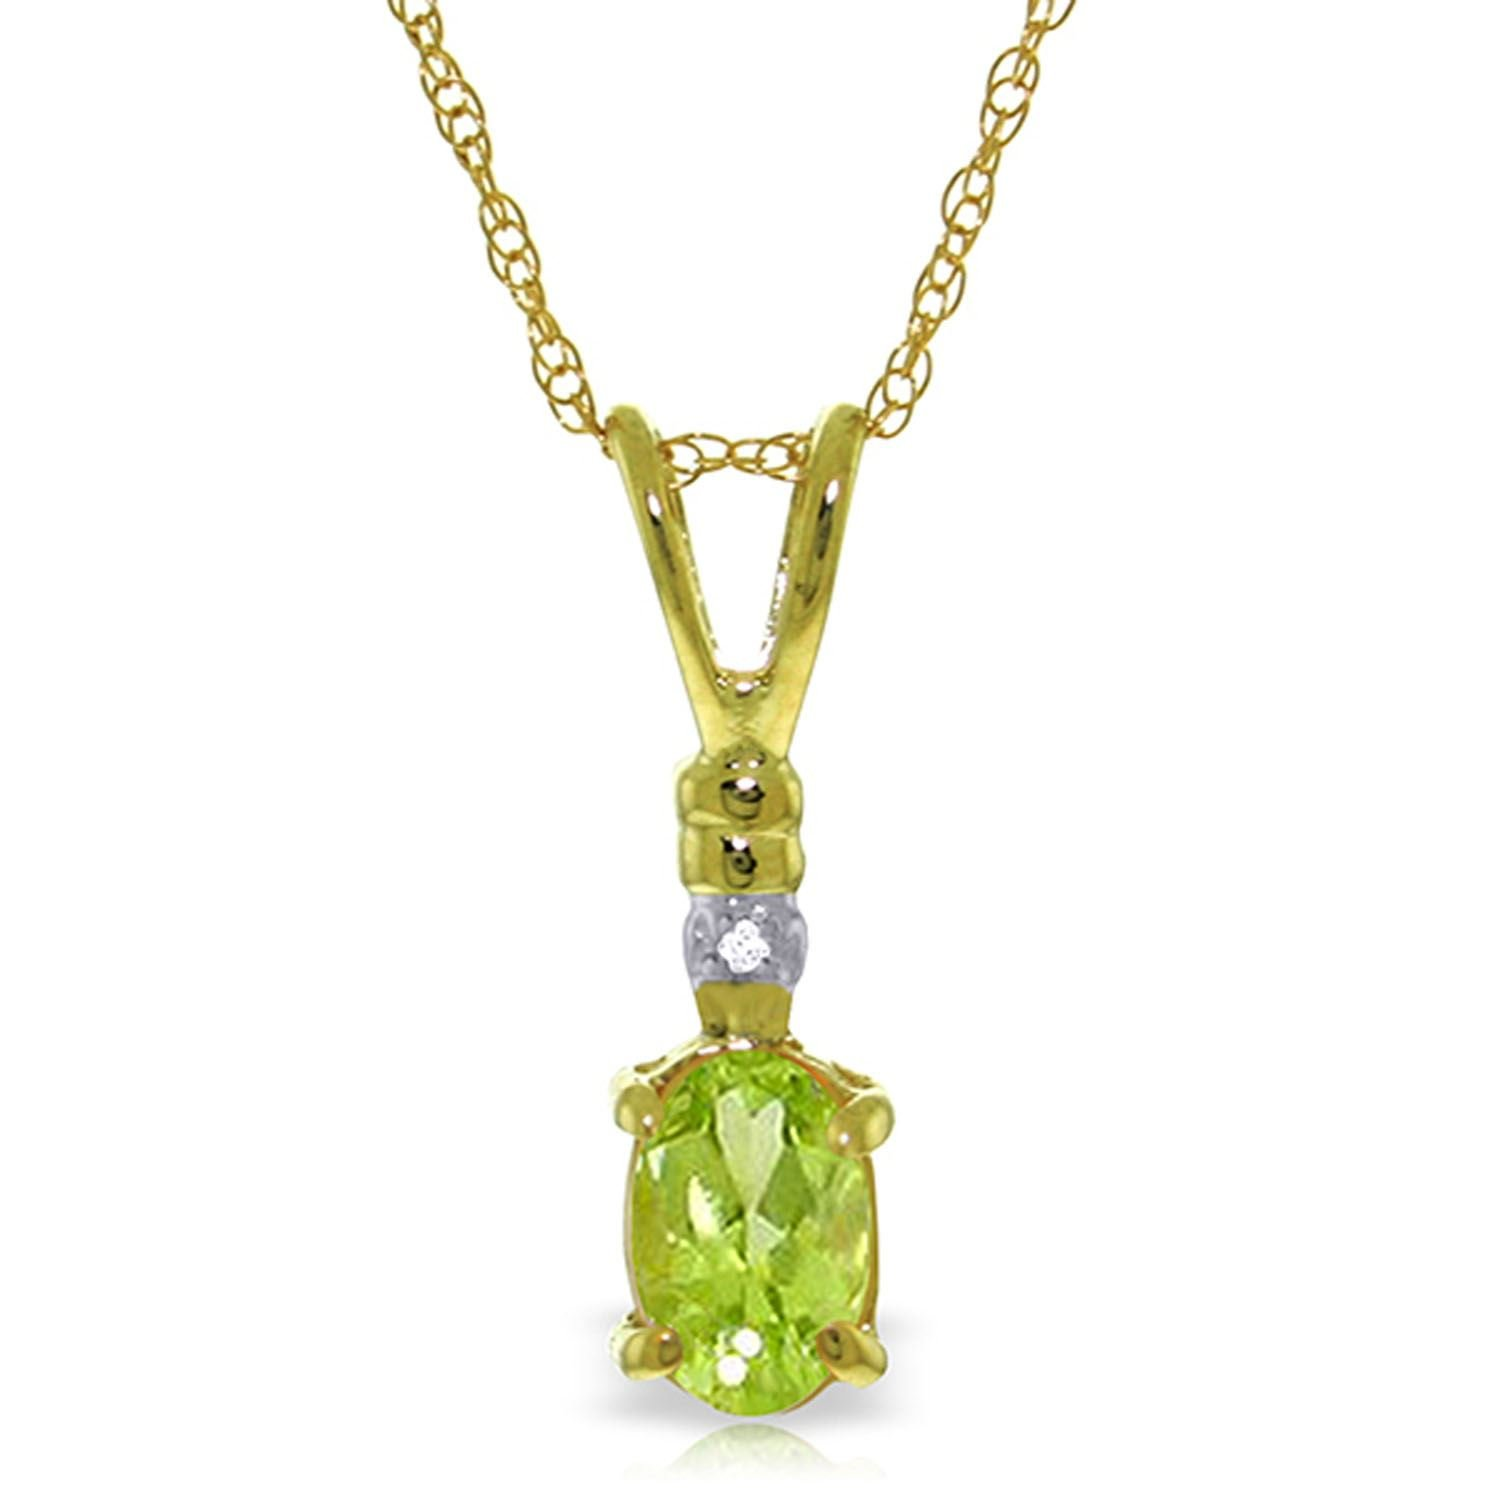 ALARRI 0.46 Carat 14K Solid Gold Love Murmur Peridot Diamond Necklace with 22 Inch Chain Length